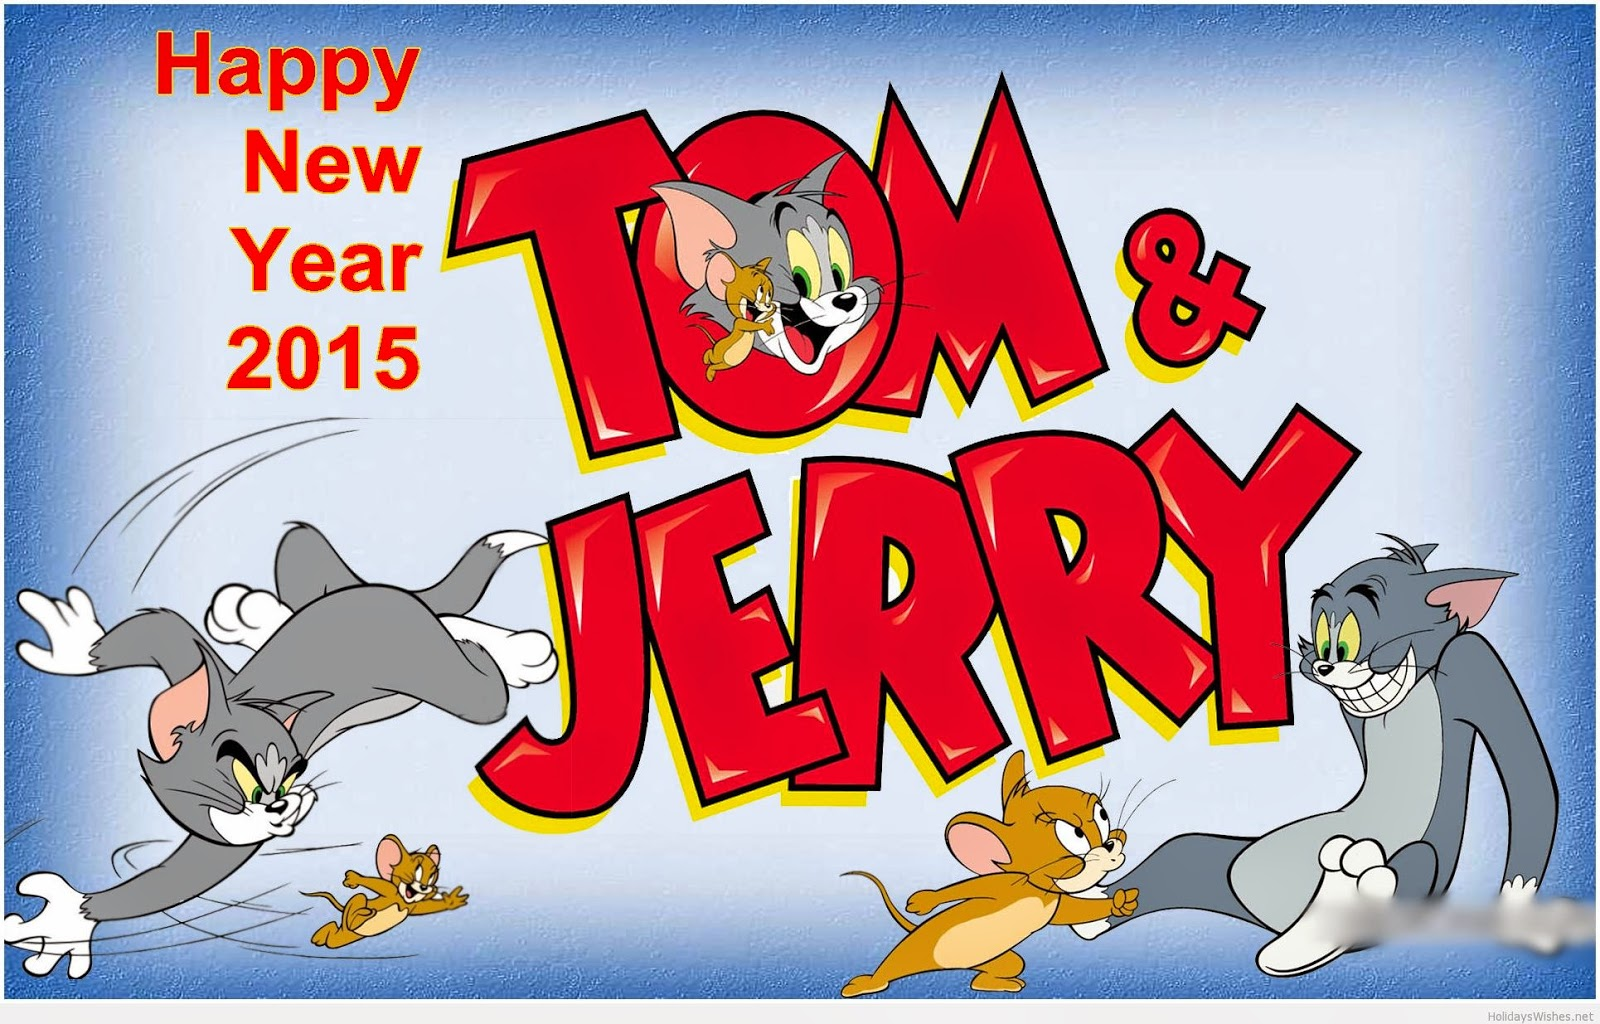 New Year Tom and Jerry wallpaper for kids